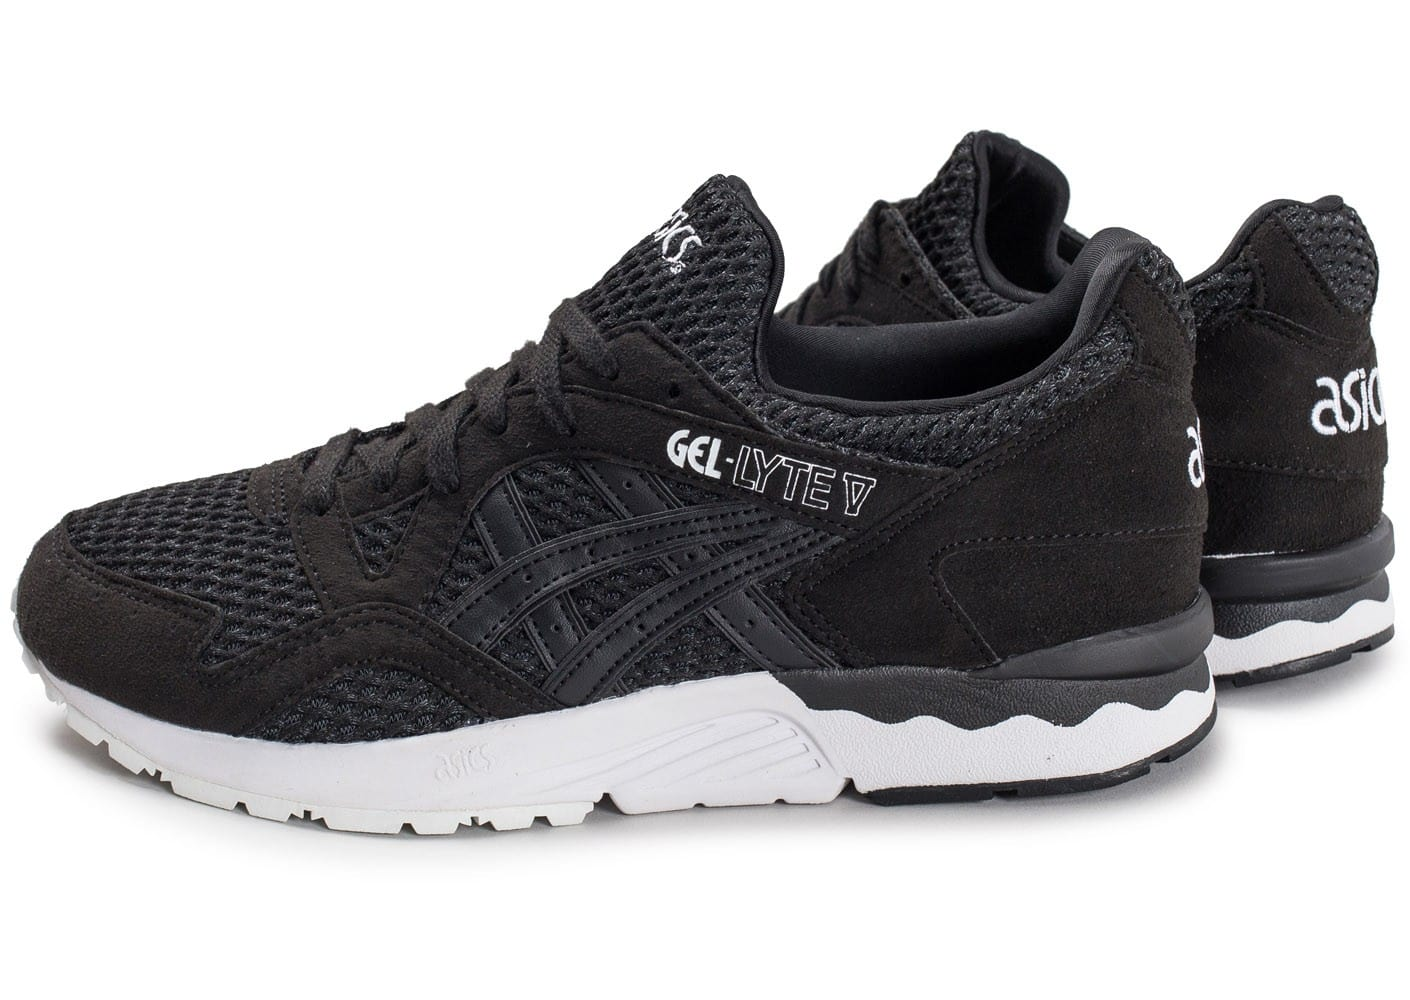 asics gel lyte v noire chaussures homme chausport. Black Bedroom Furniture Sets. Home Design Ideas